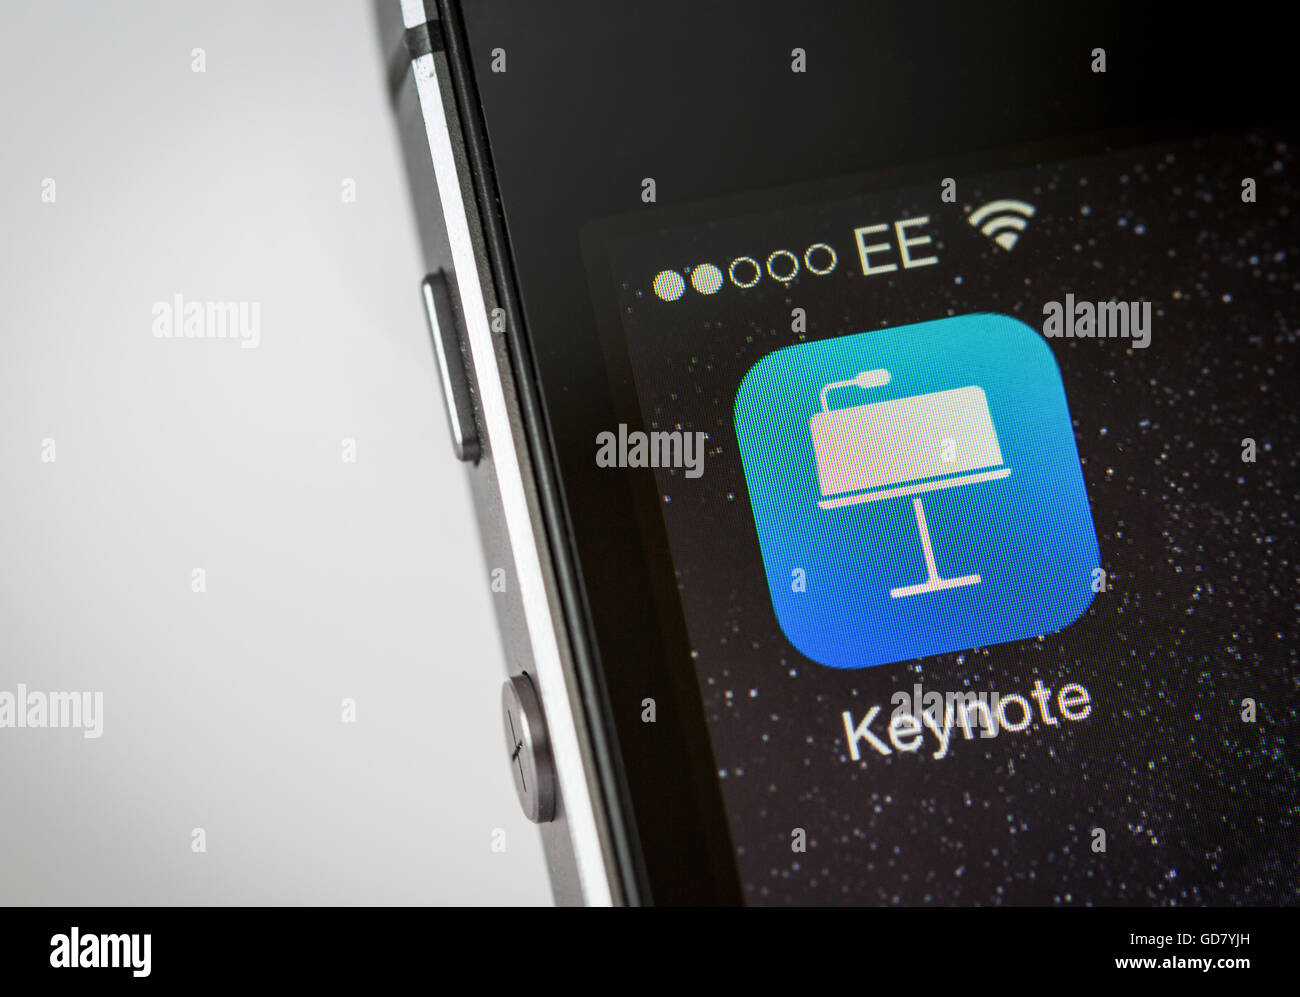 Apple Ketnote App on an iPhone smart phone - Stock Image